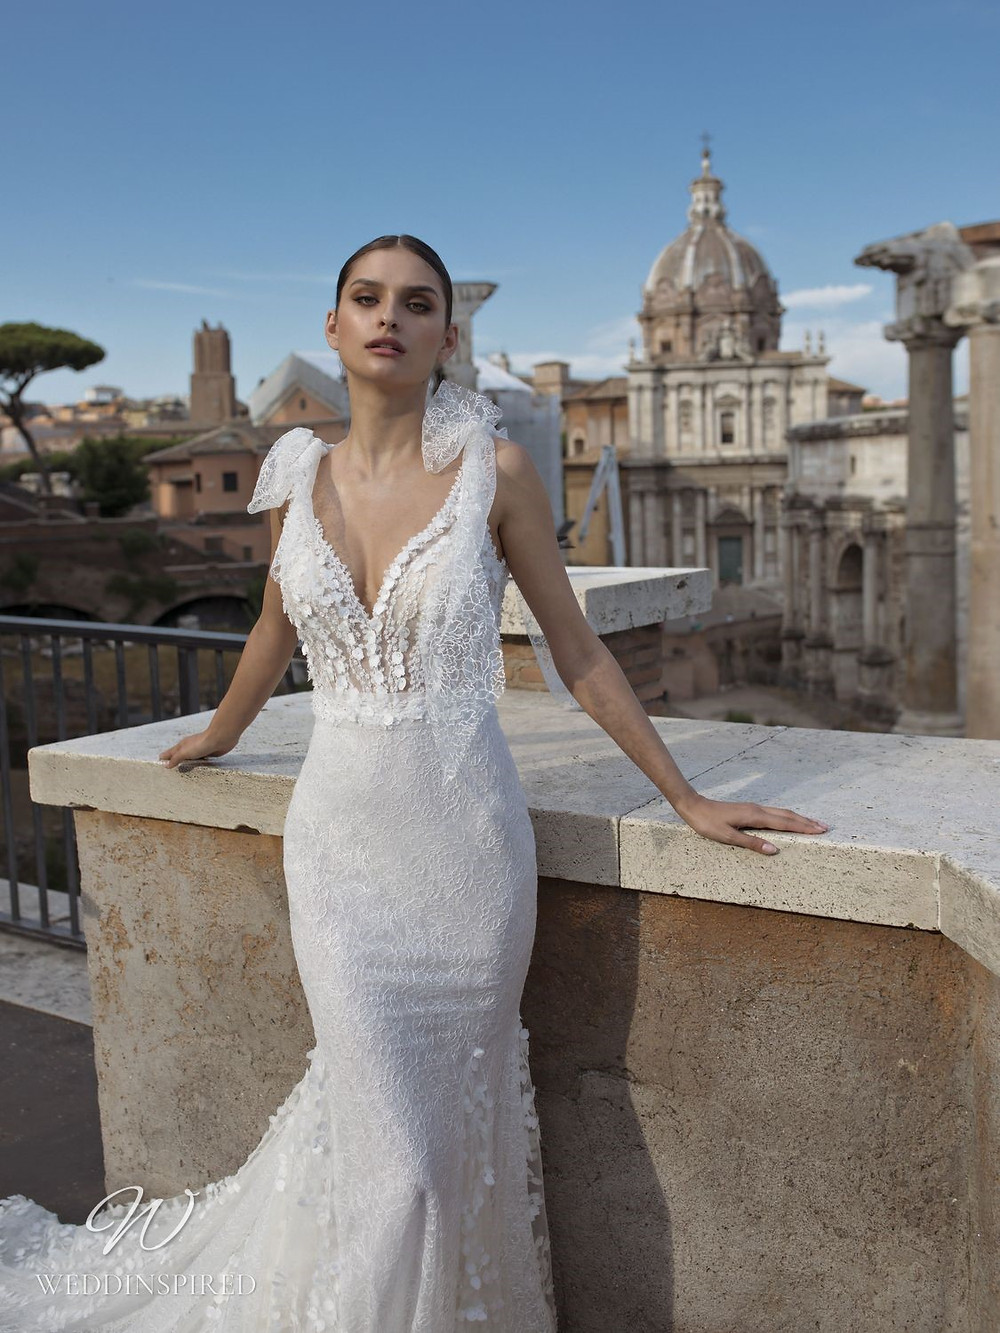 A Pinella Passaro lace mermaid wedding dress with a low neckline and bows